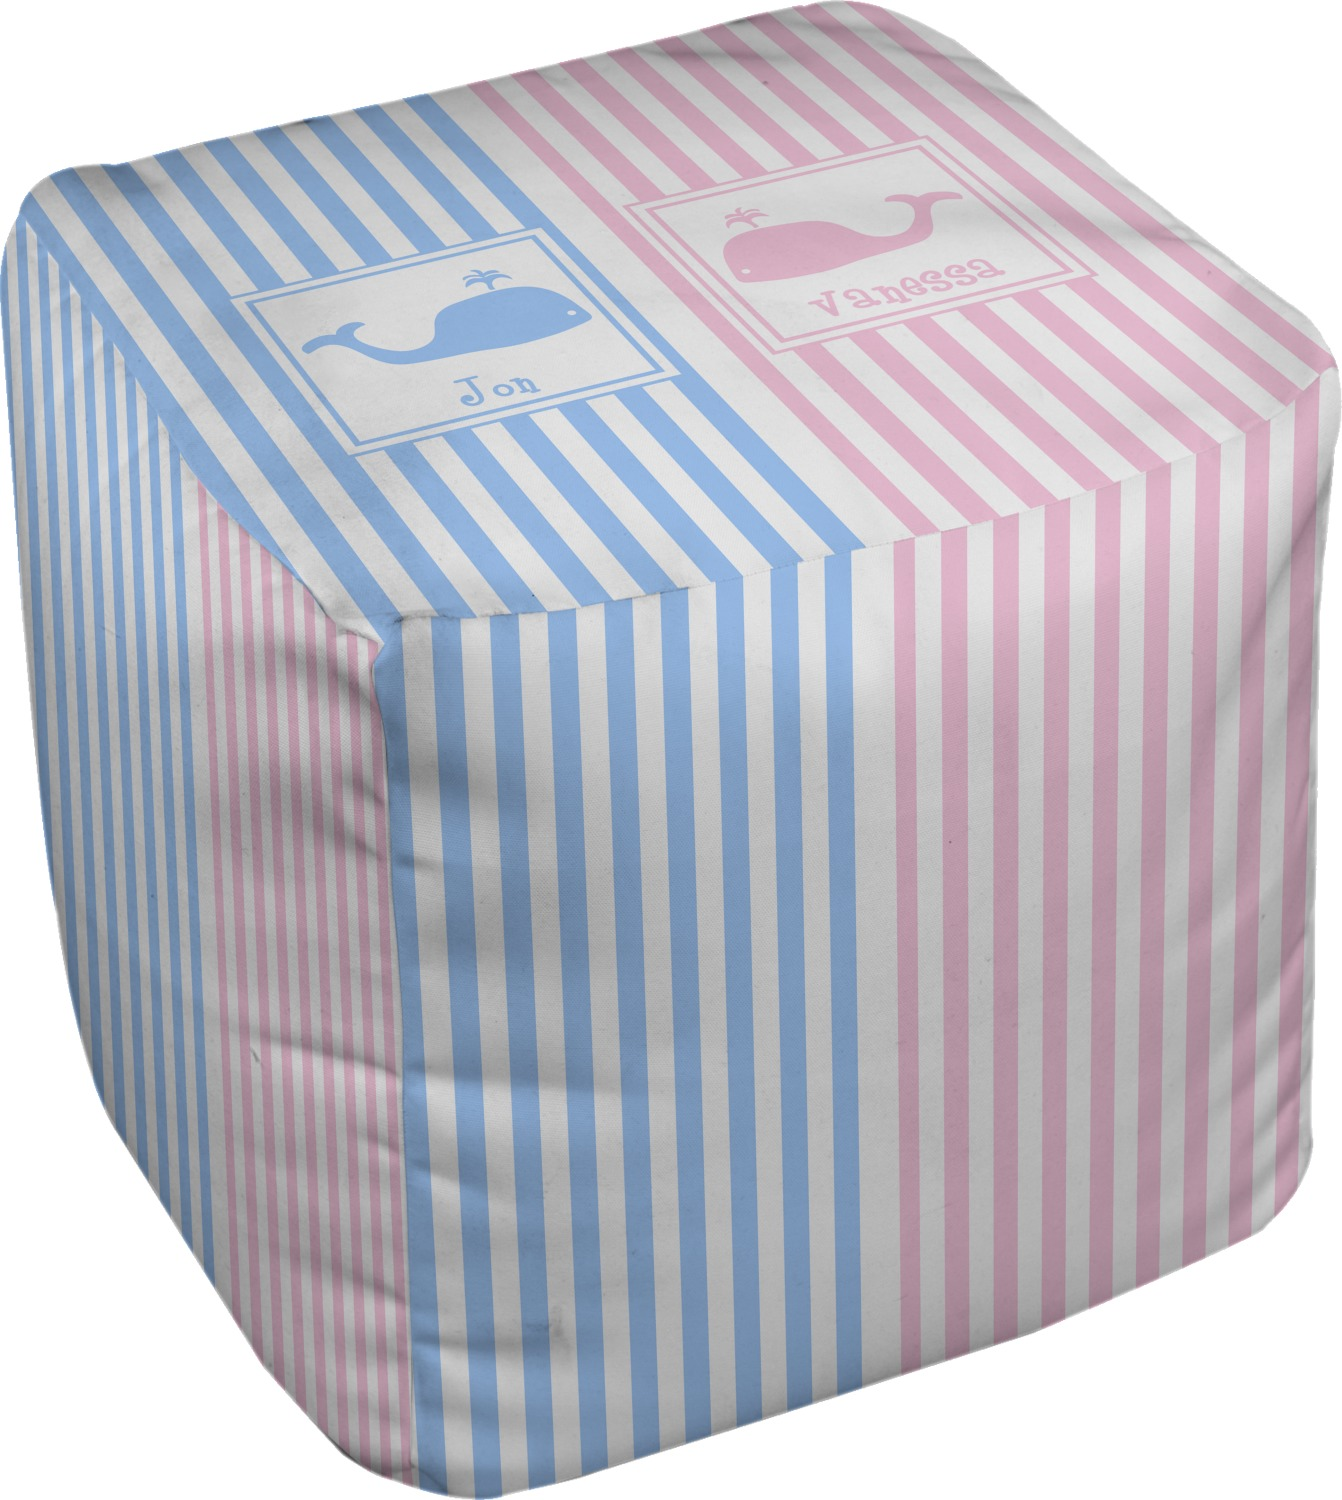 striped w whales cube pouf ottoman 18 personalized. Black Bedroom Furniture Sets. Home Design Ideas